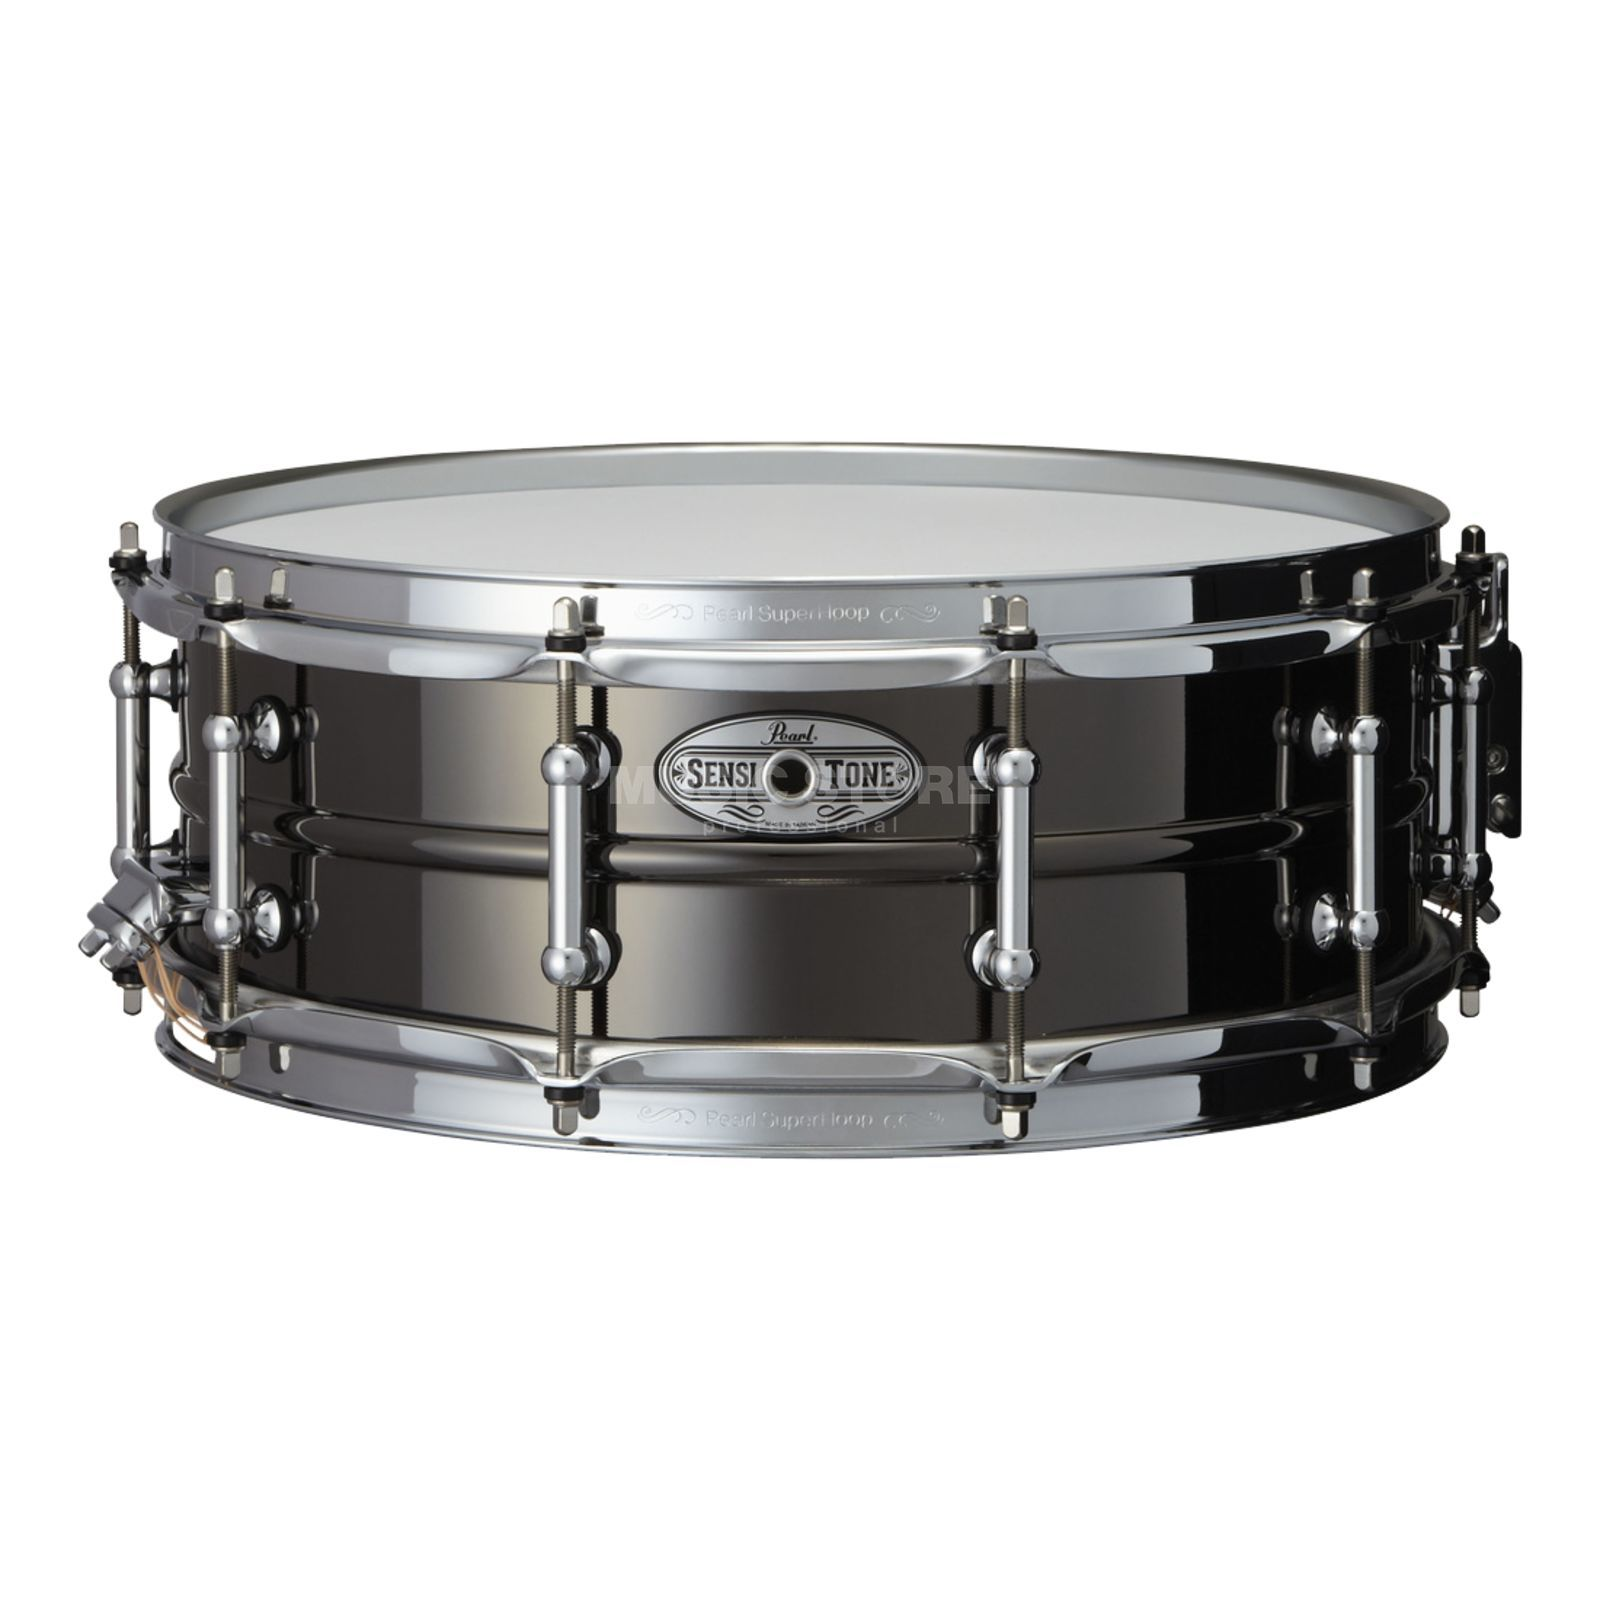 "Pearl Sensitone Snare STA-1450BR, 14""x5"", Black Nickel / Brass Produktbild"